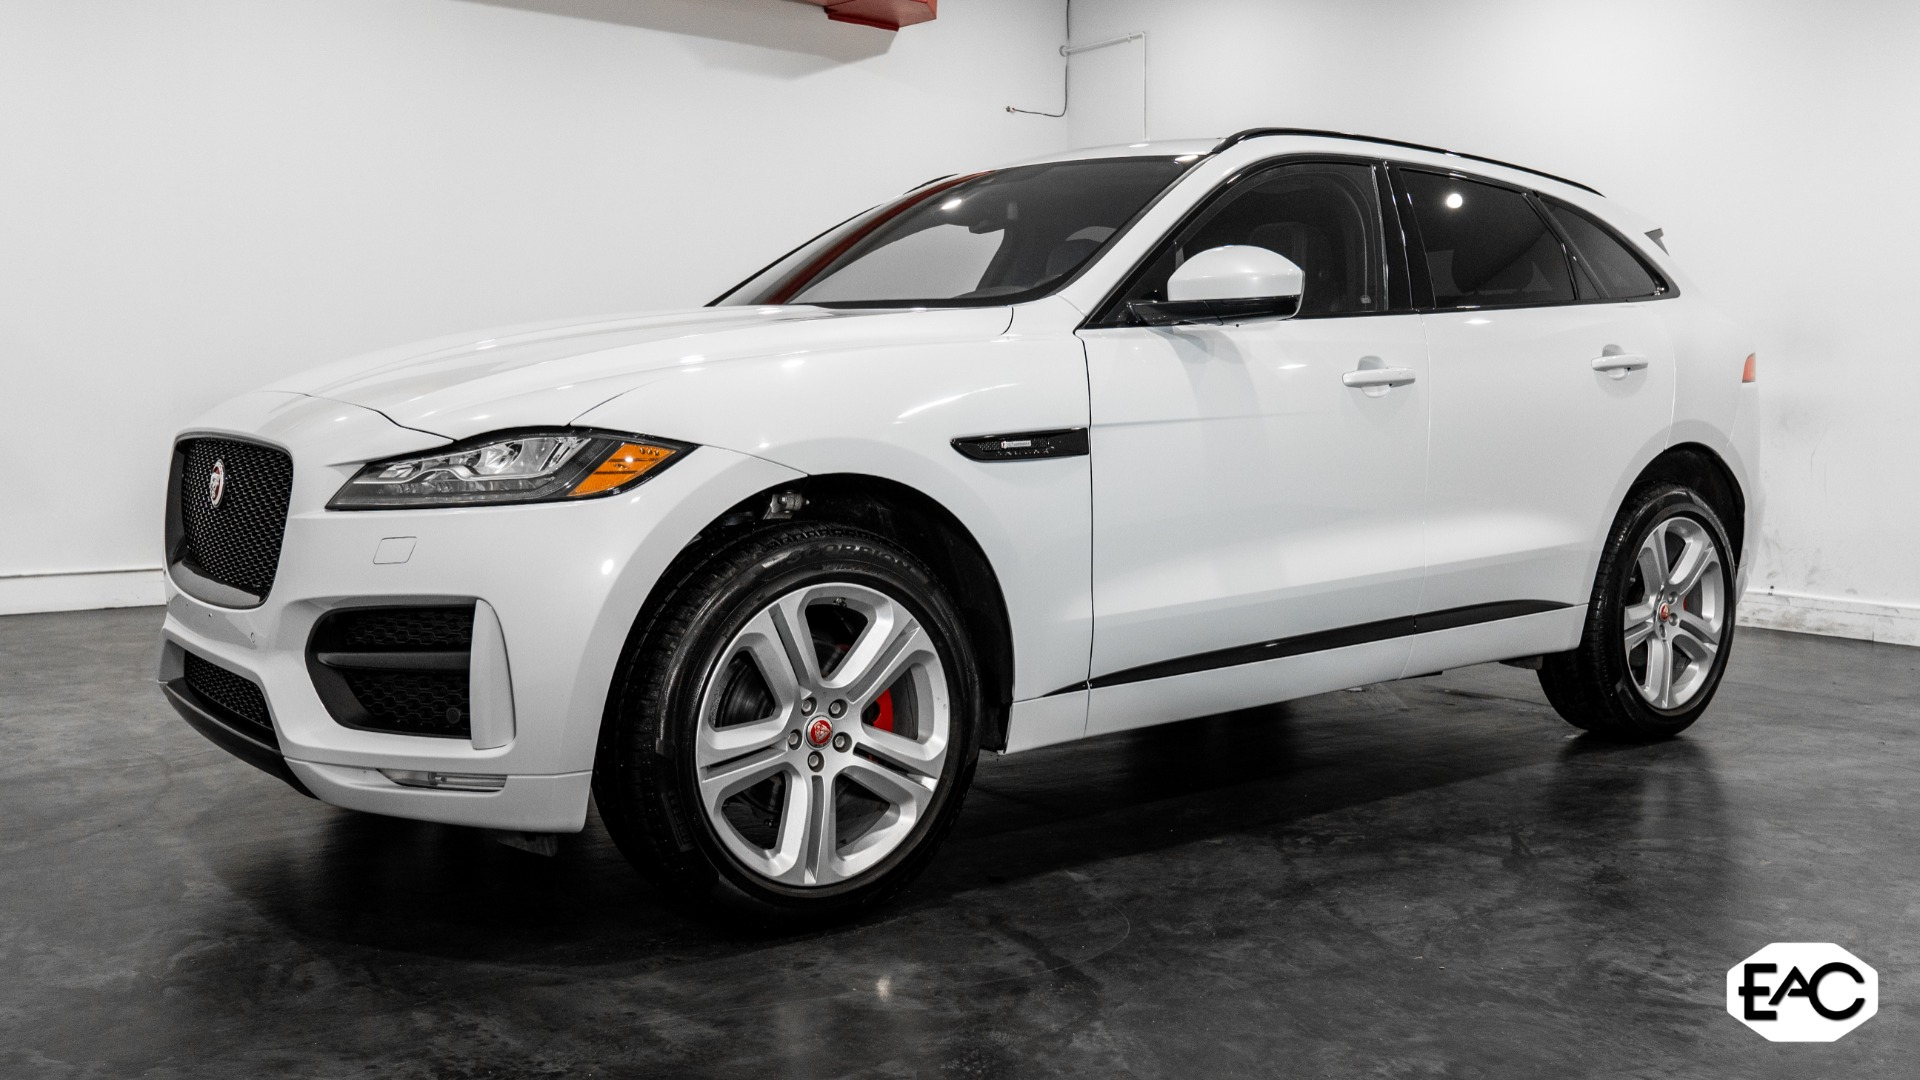 Used 2018 Jaguar F-PACE 25t R-Sport for sale Sold at Empire Auto Collection in Warren MI 48091 1